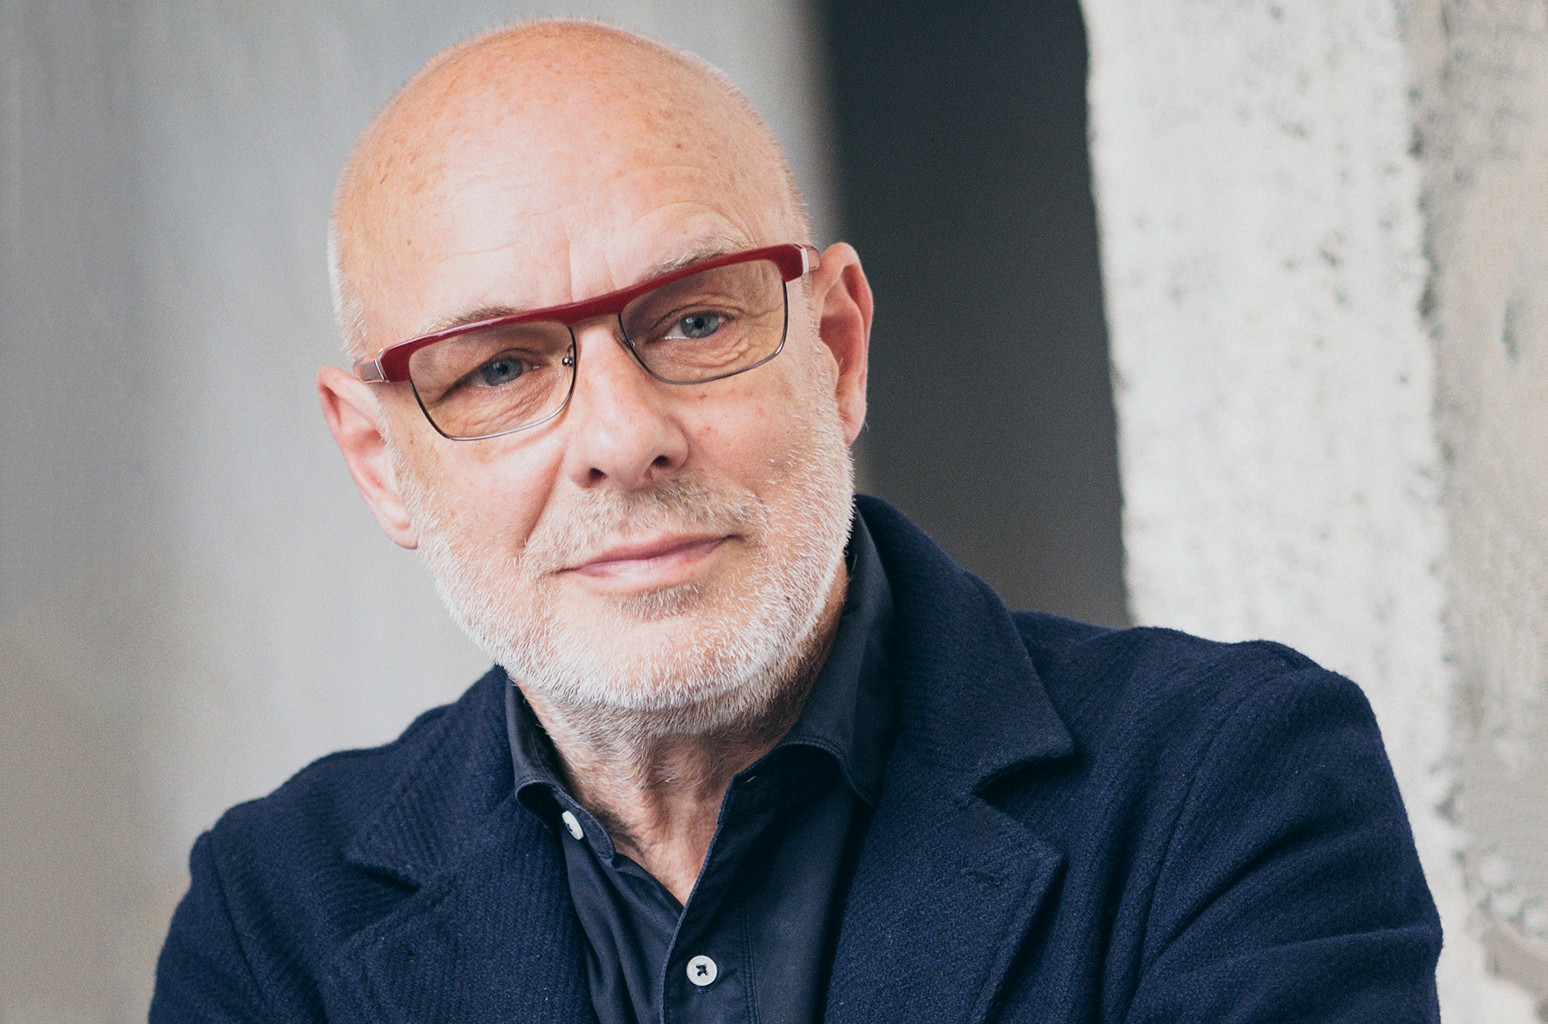 Brian Eno photographed in Rome on May 20, 2016.